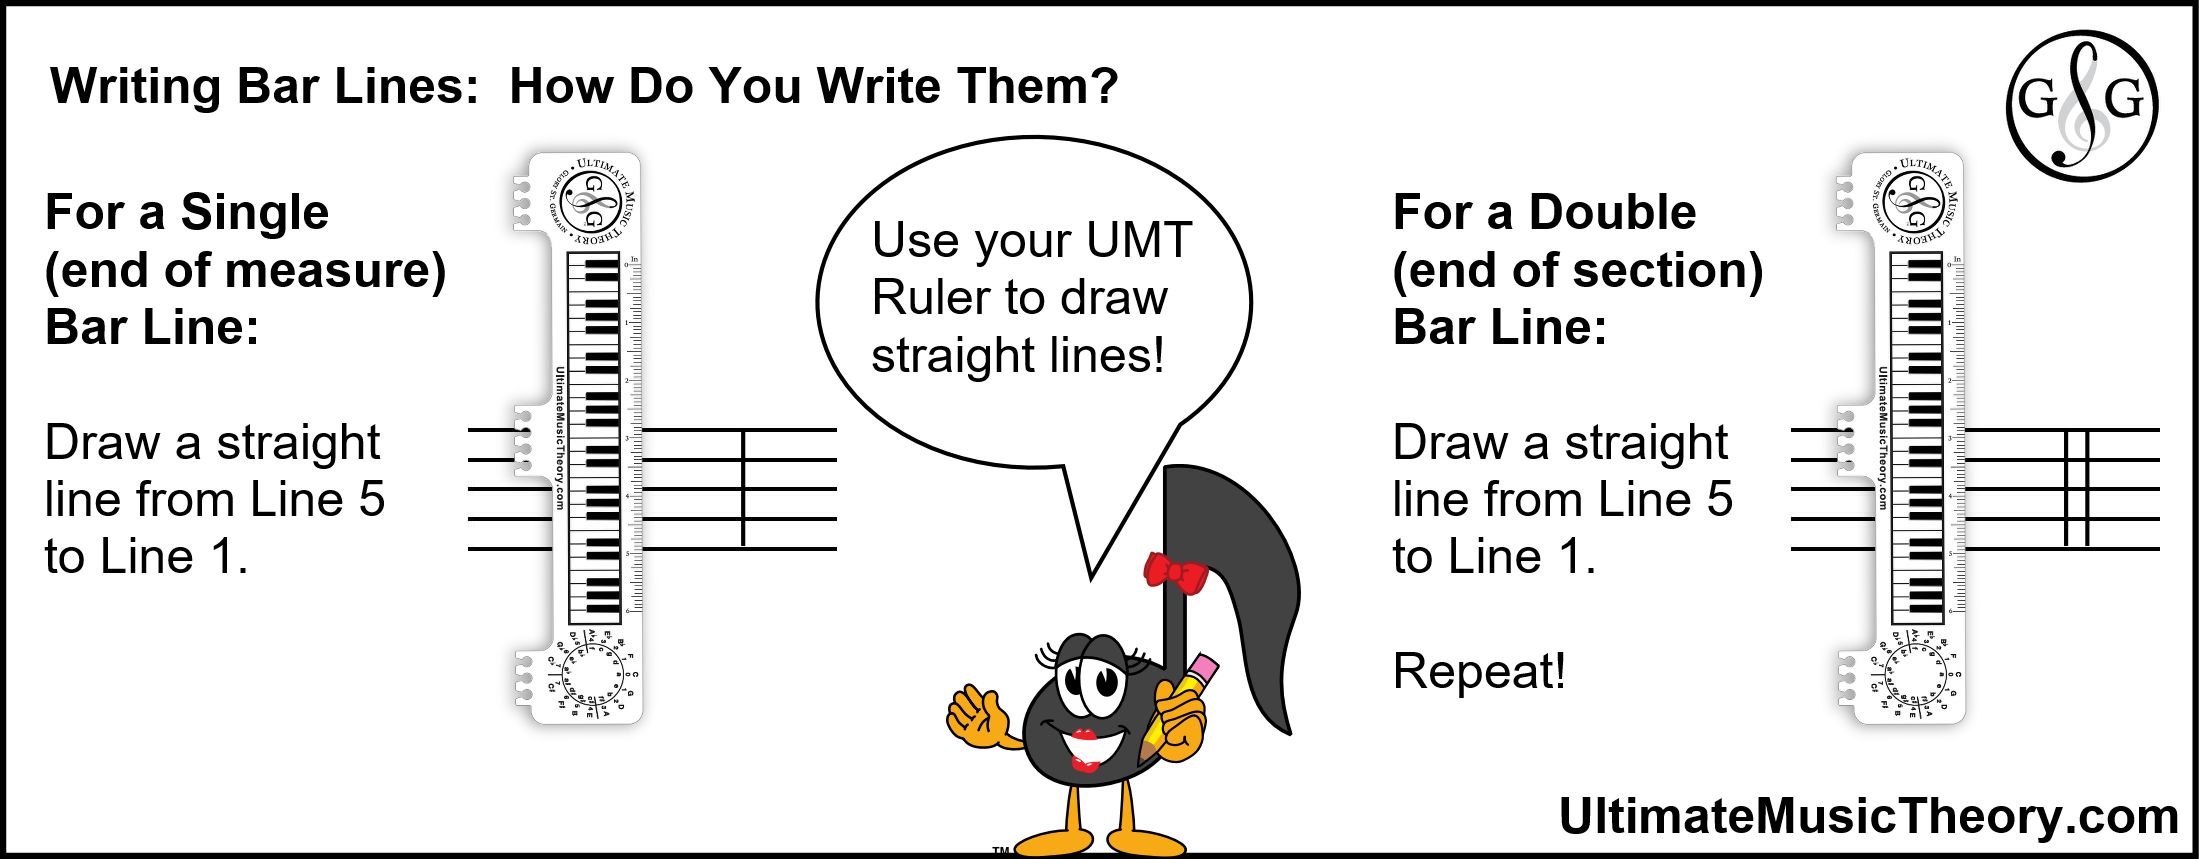 Writing Bar Lines